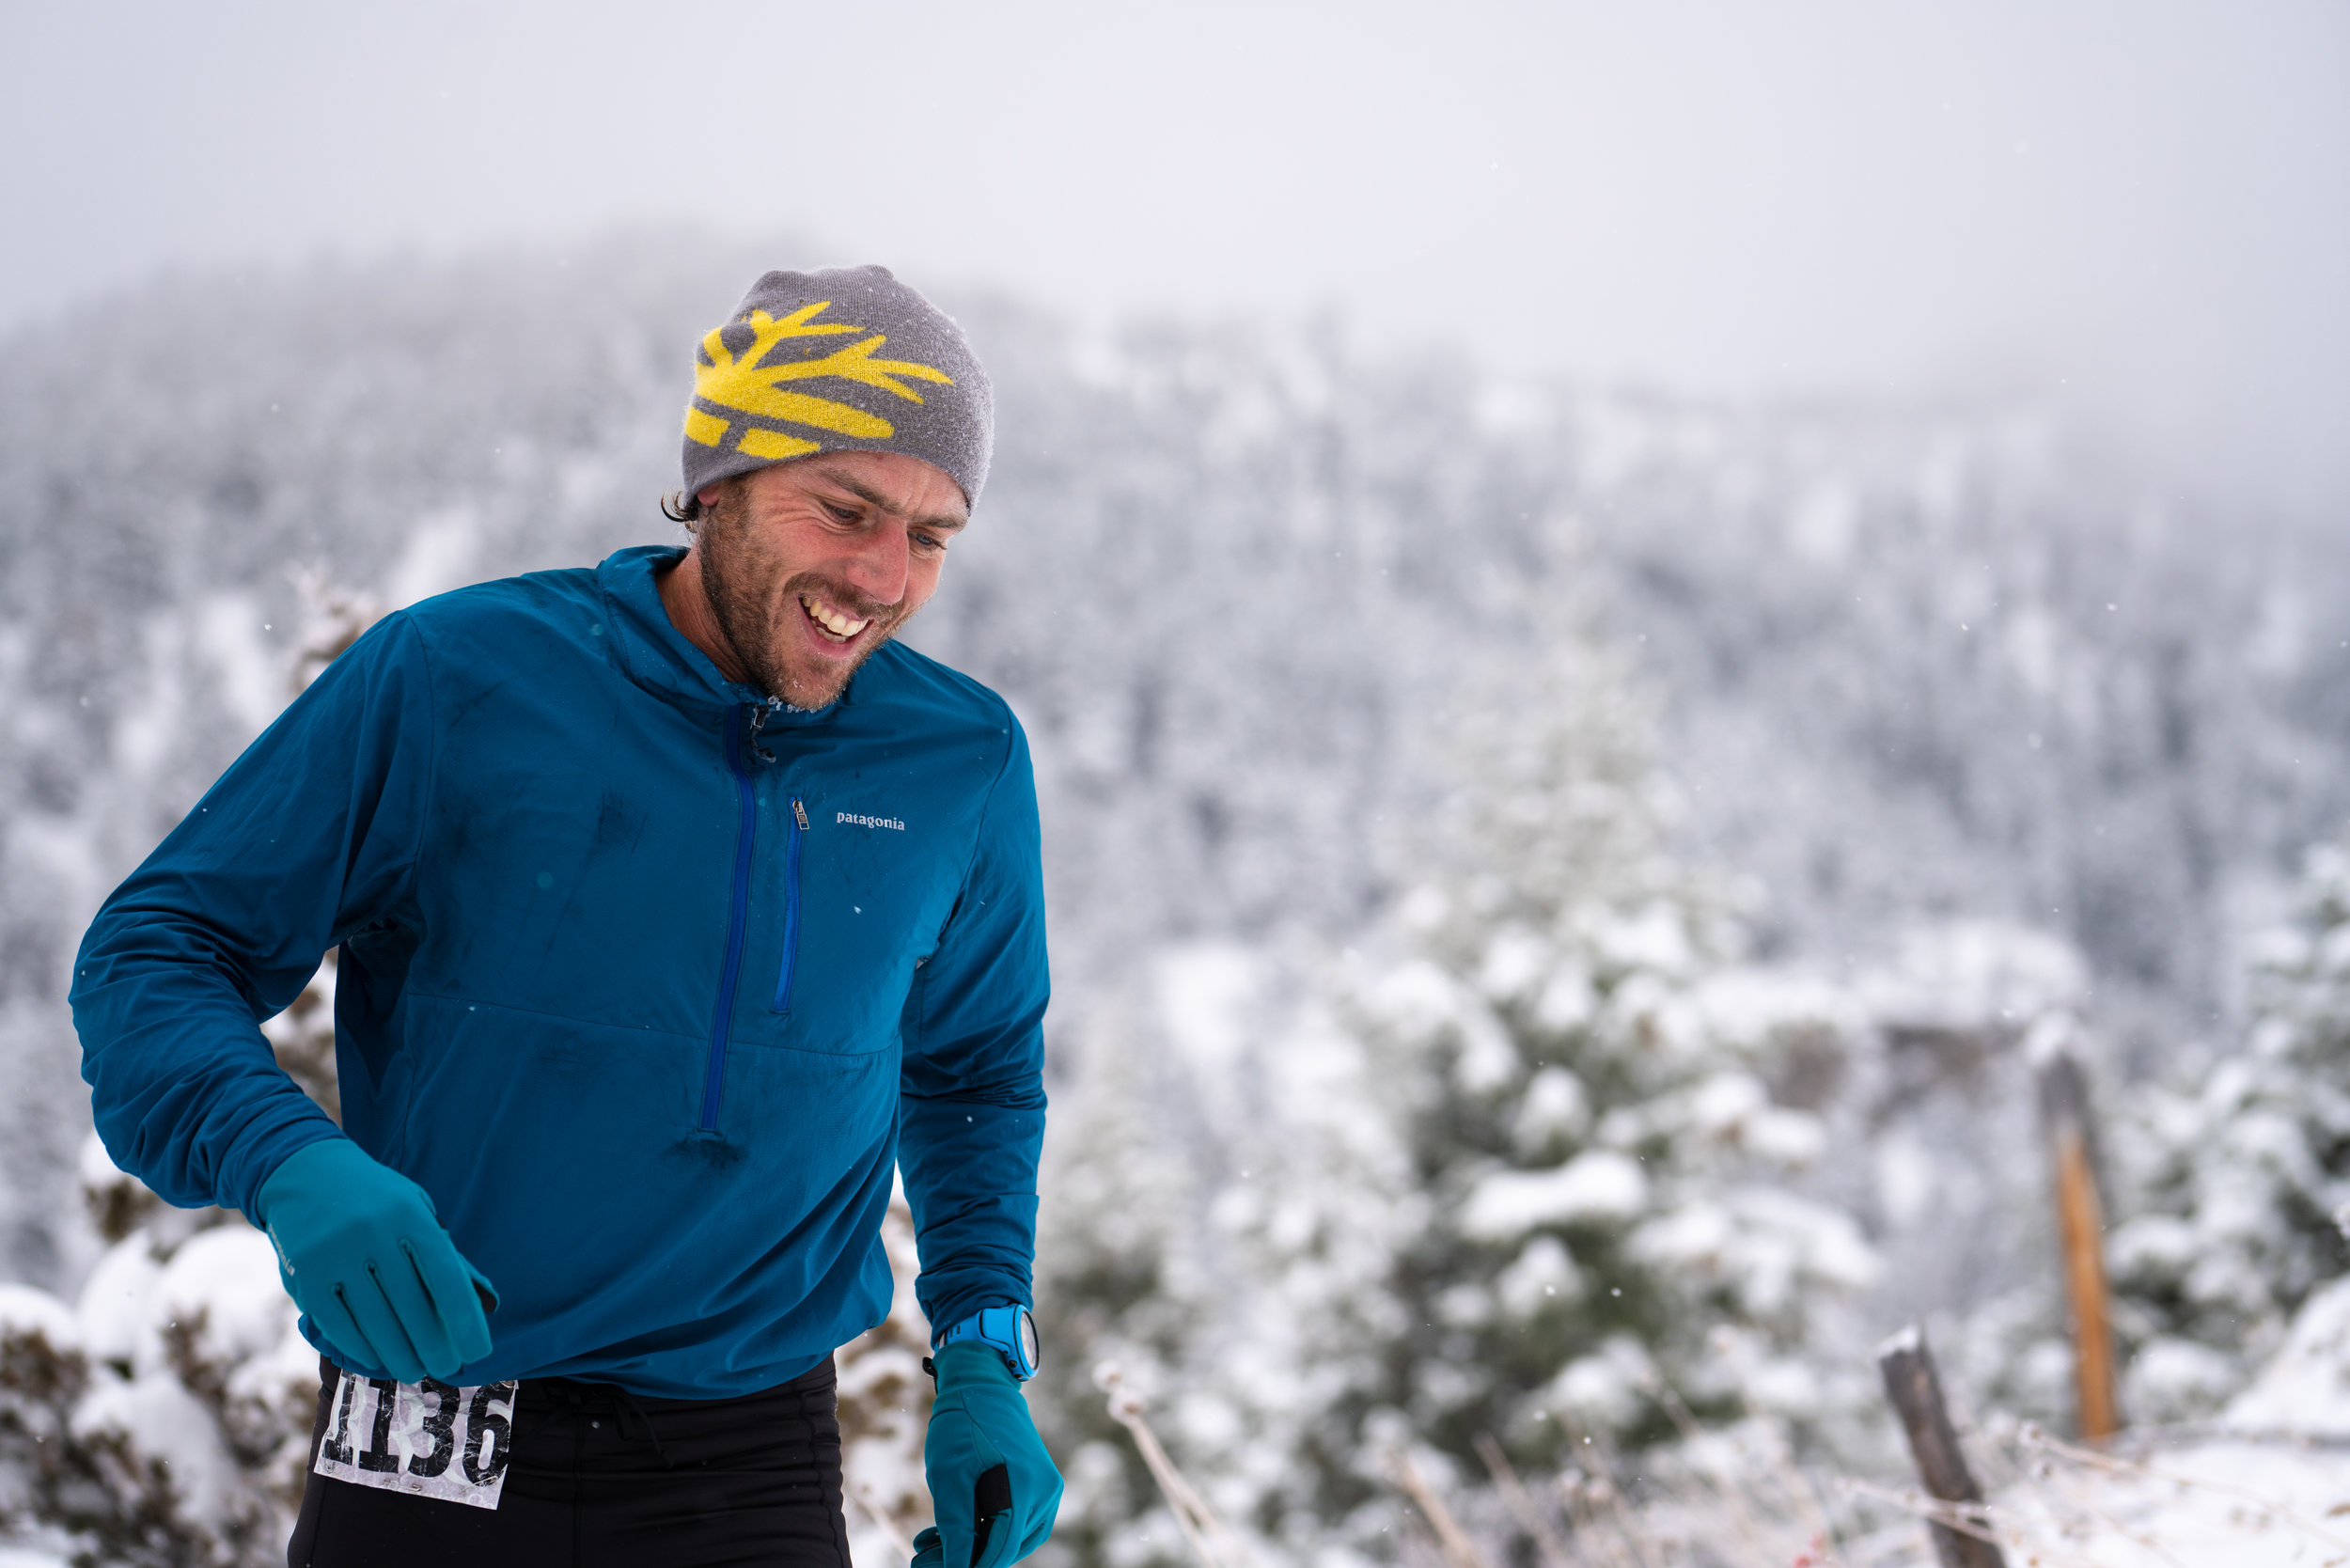 Runners battle winter snow that coats the Bridgers during Bozeman Running Co. racing of the Foothills 14k up Sypes Canyon. Runner Alan Adams.